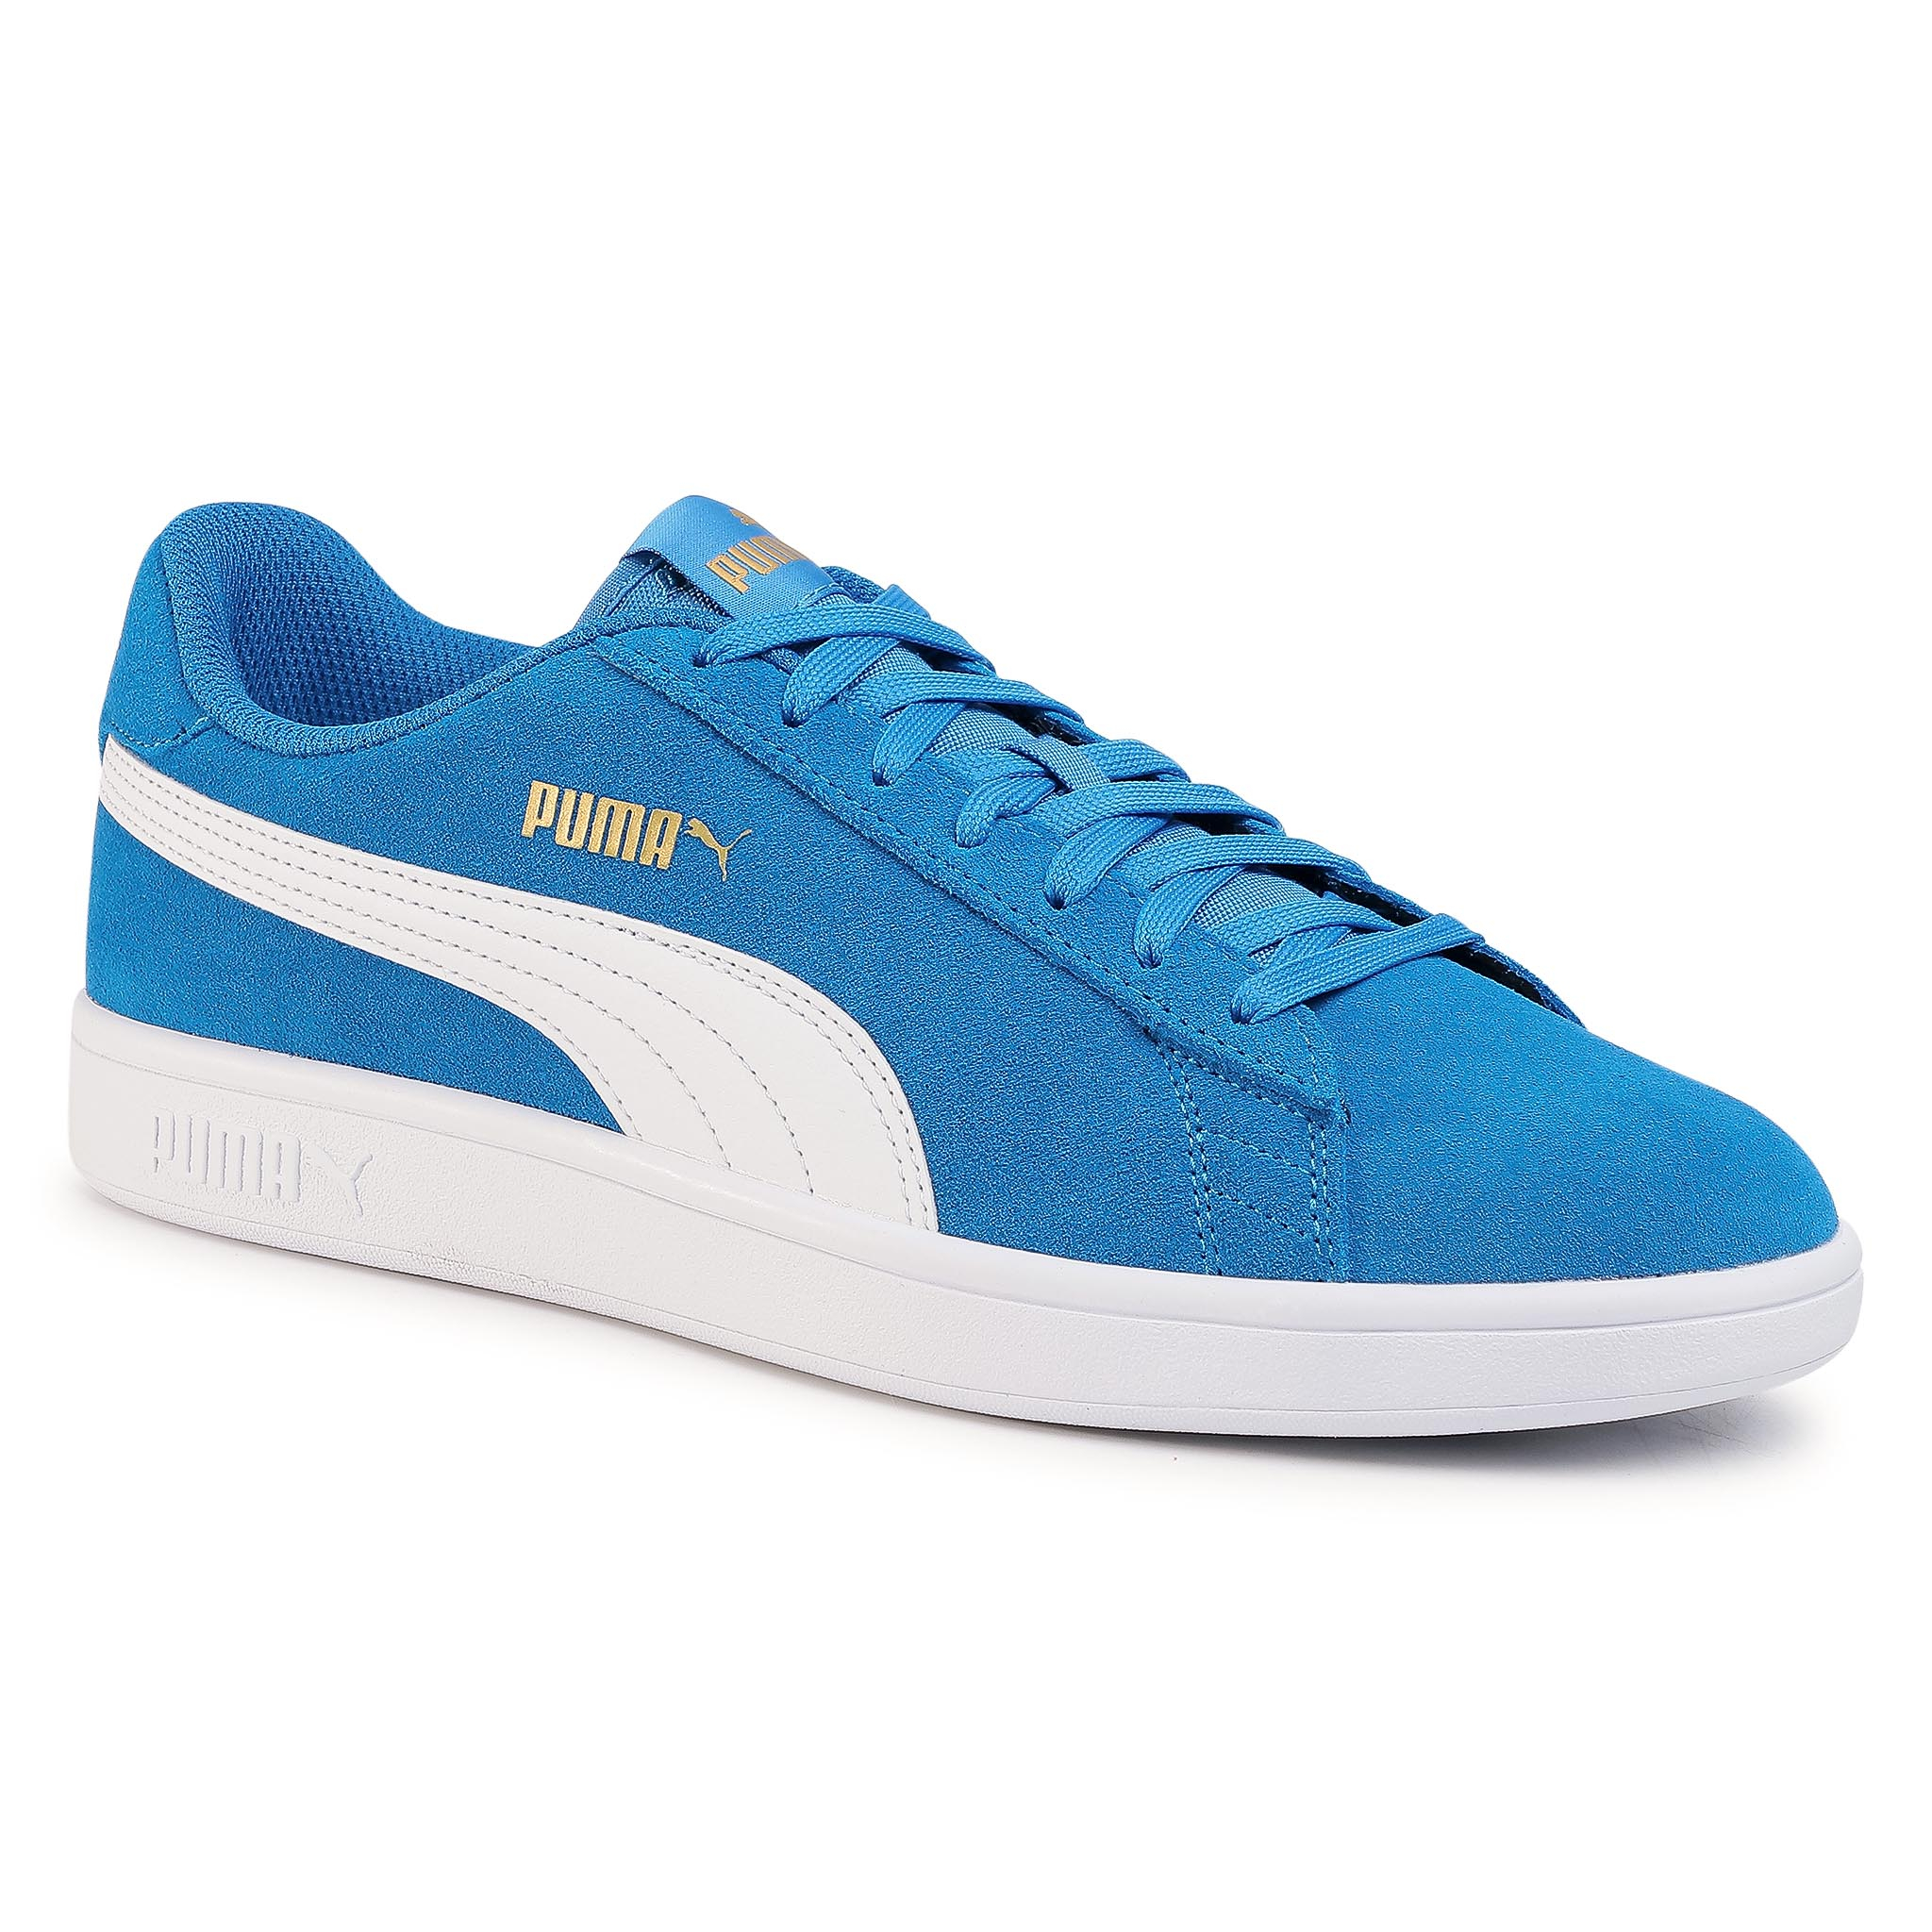 Sneakers PUMA - Smash V2 364989 40 Palace Blue/White/Team Gold